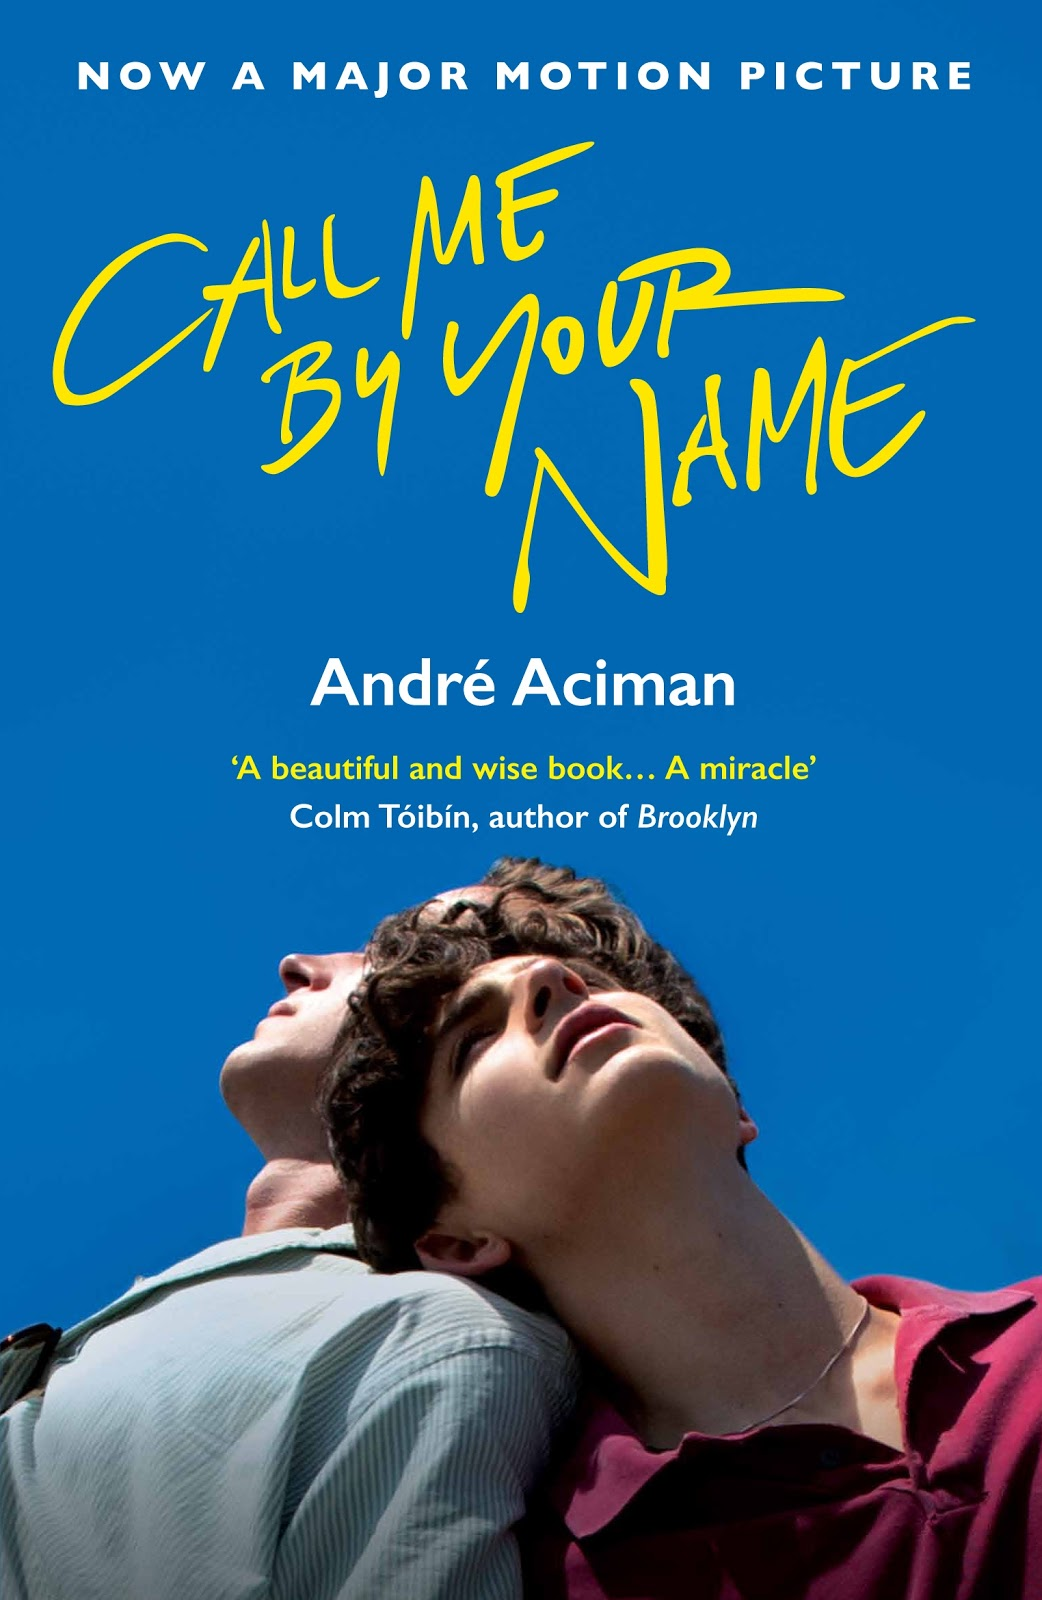 Call Me By Your Name\' Trailer #1 (2017) .. an Indie Film | miApples ...